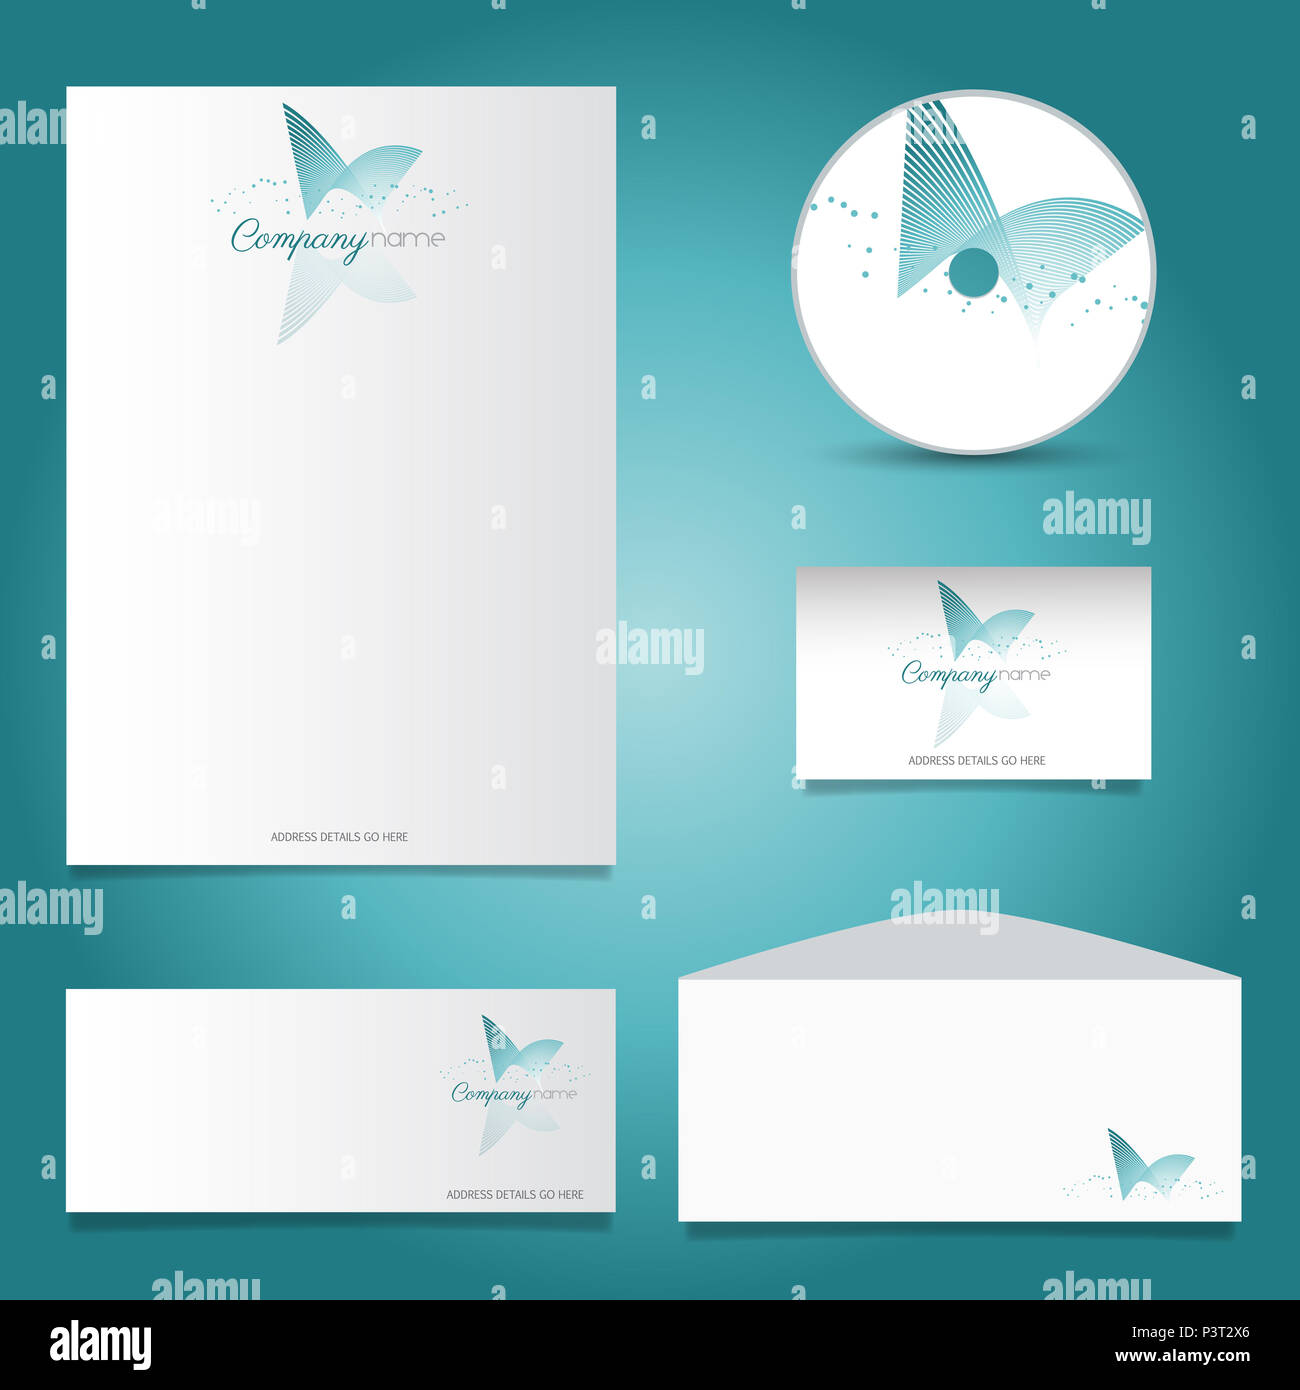 business stationery set with decorative logo design stock photo